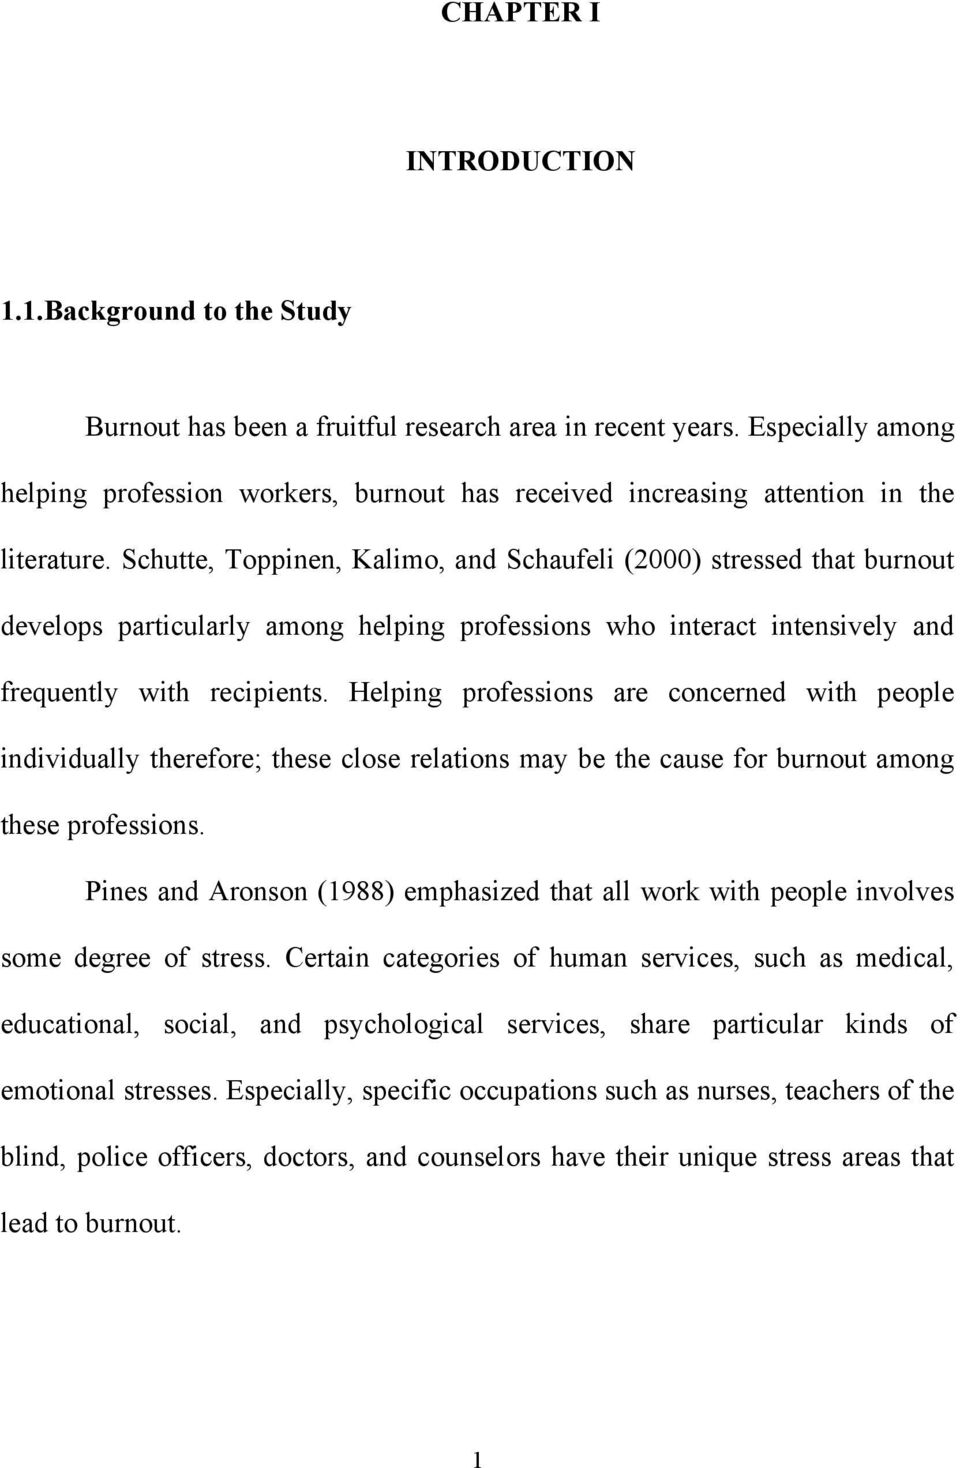 Schutte, Toppinen, Kalimo, and Schaufeli (2000) stressed that burnout develops particularly among helping professions who interact intensively and frequently with recipients.